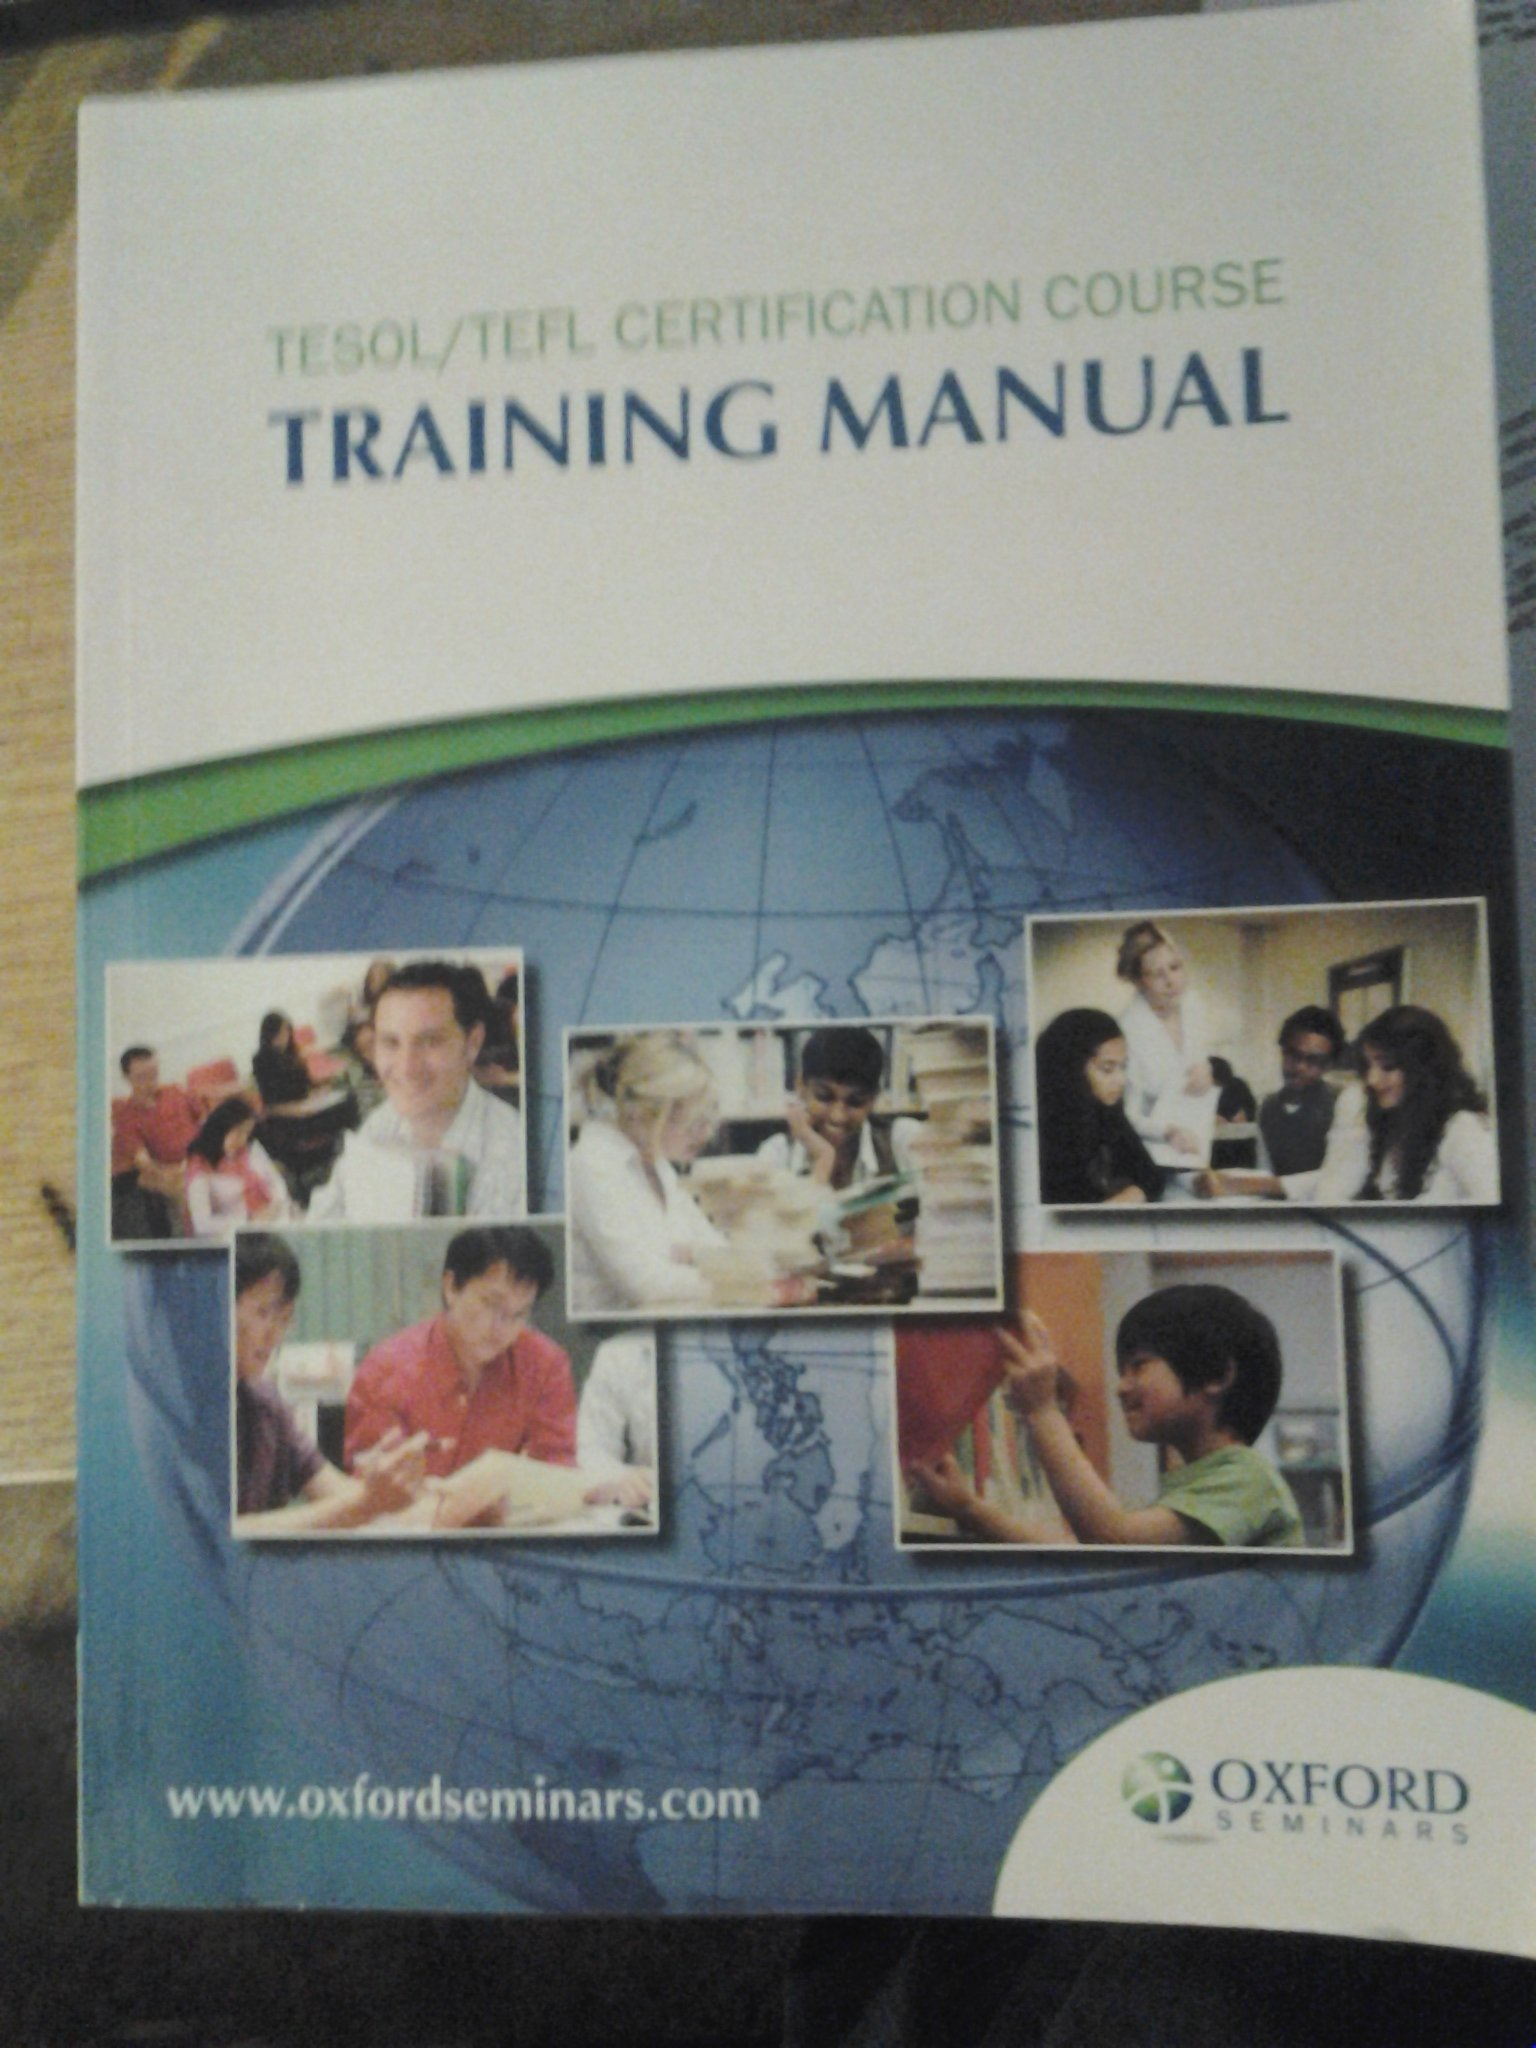 Tesoltefl Certification Course Training Manual Oxford